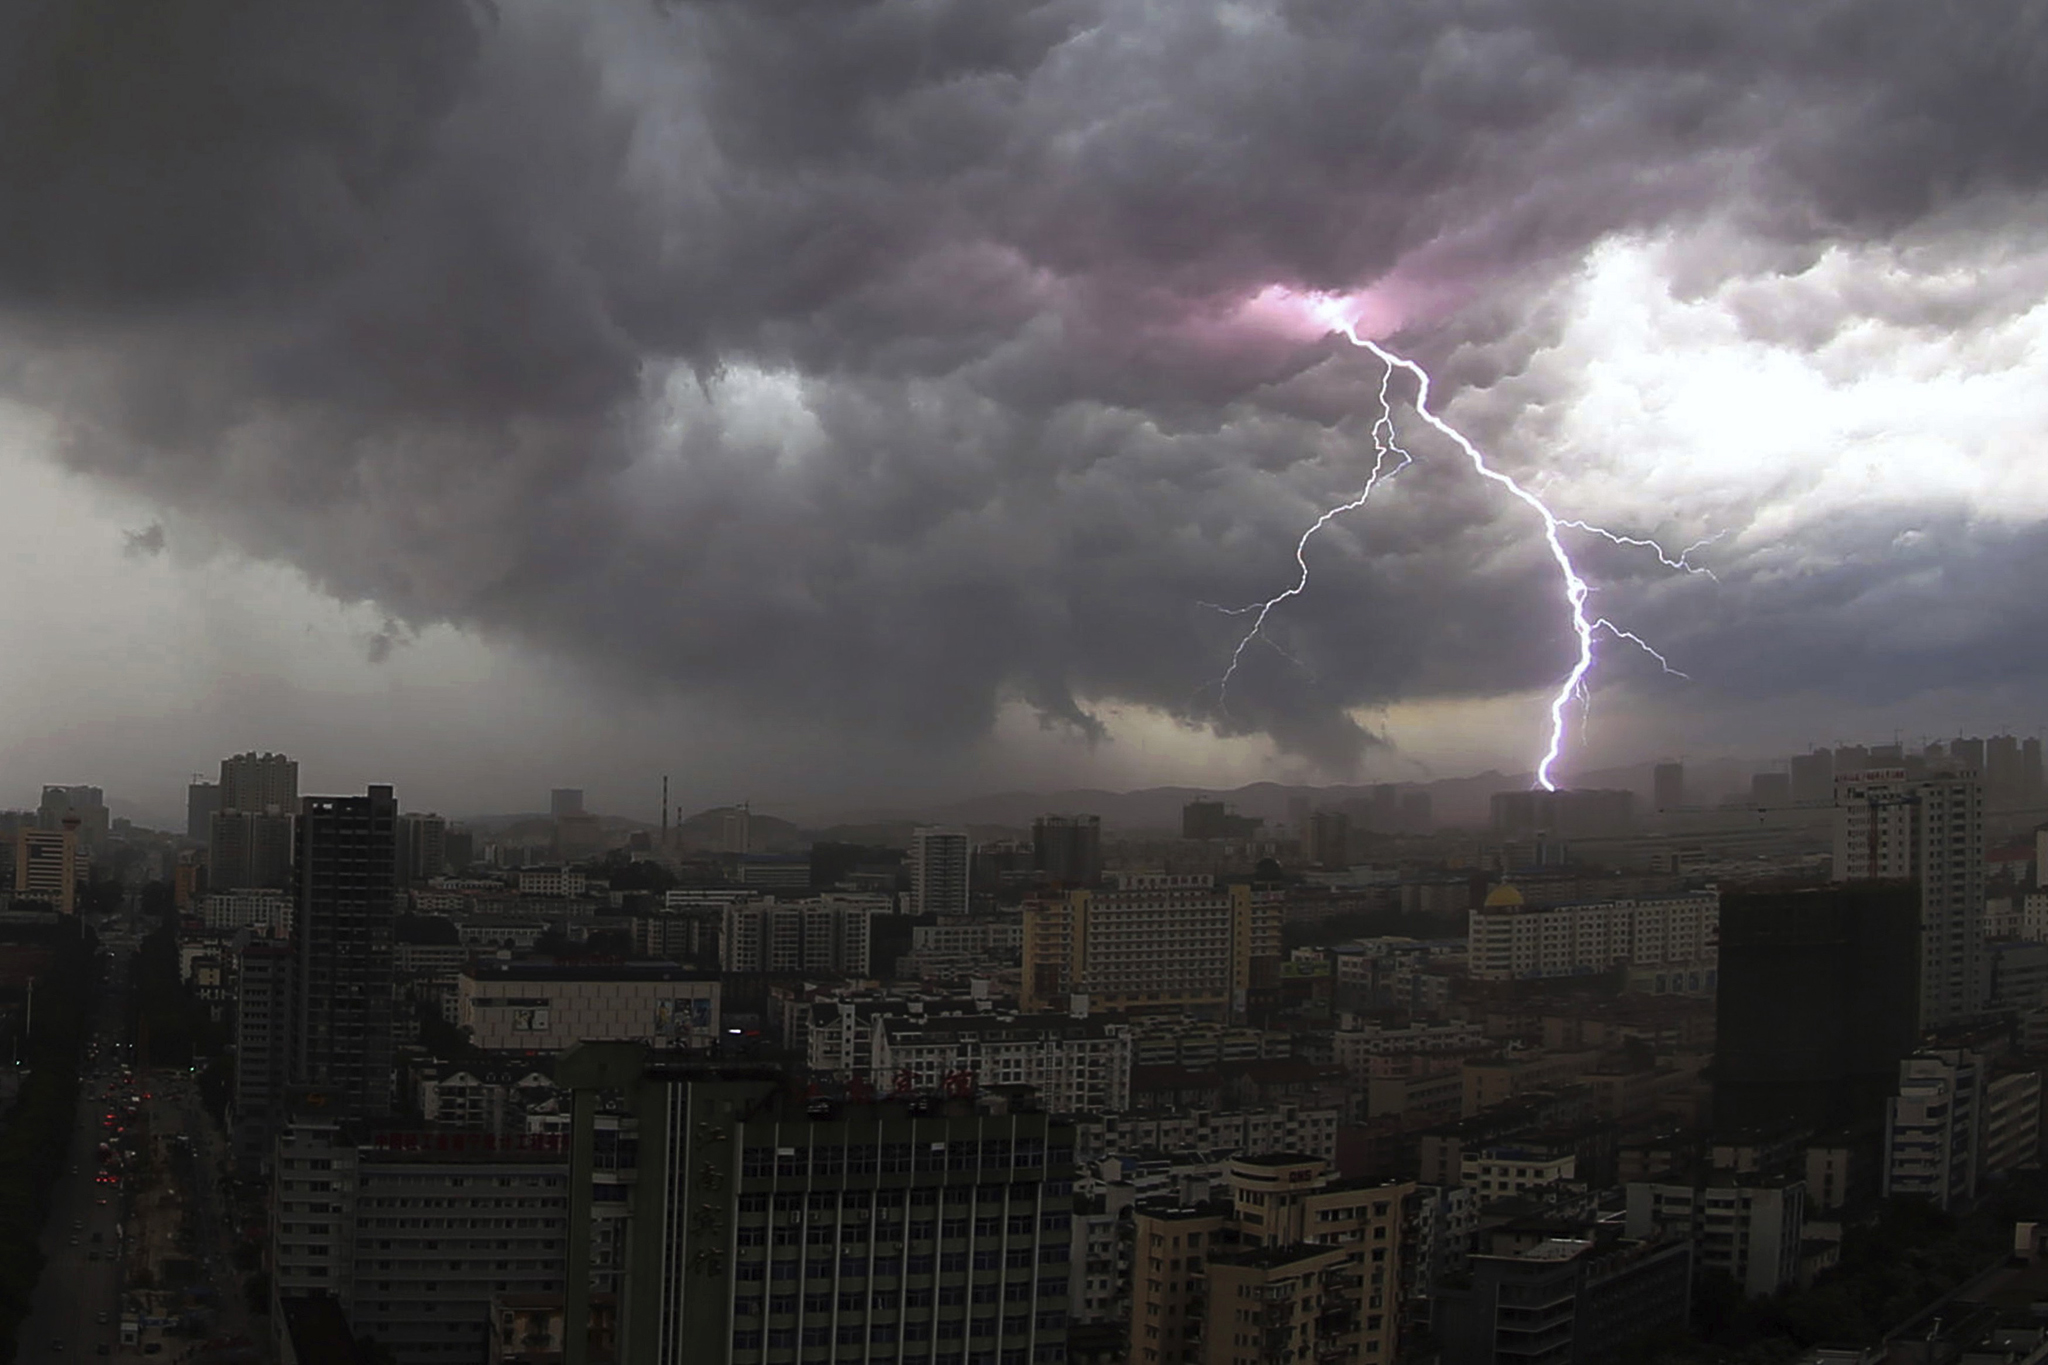 A streak of lightning is seen above the skyline of Nanning during a thunderstorm...A streak of lightning is seen above the skyline of Nanning during a thunderstorm in Guangxi Zhuang Autonomous region June 5, 2014. Picture taken June 5, 2014. REUTERS/Stringer (CHINA - Tags: ENVIRONMENT CITYSCAPE) CHINA OUT. NO COMMERCIAL OR EDITORIAL SALES IN CHINA